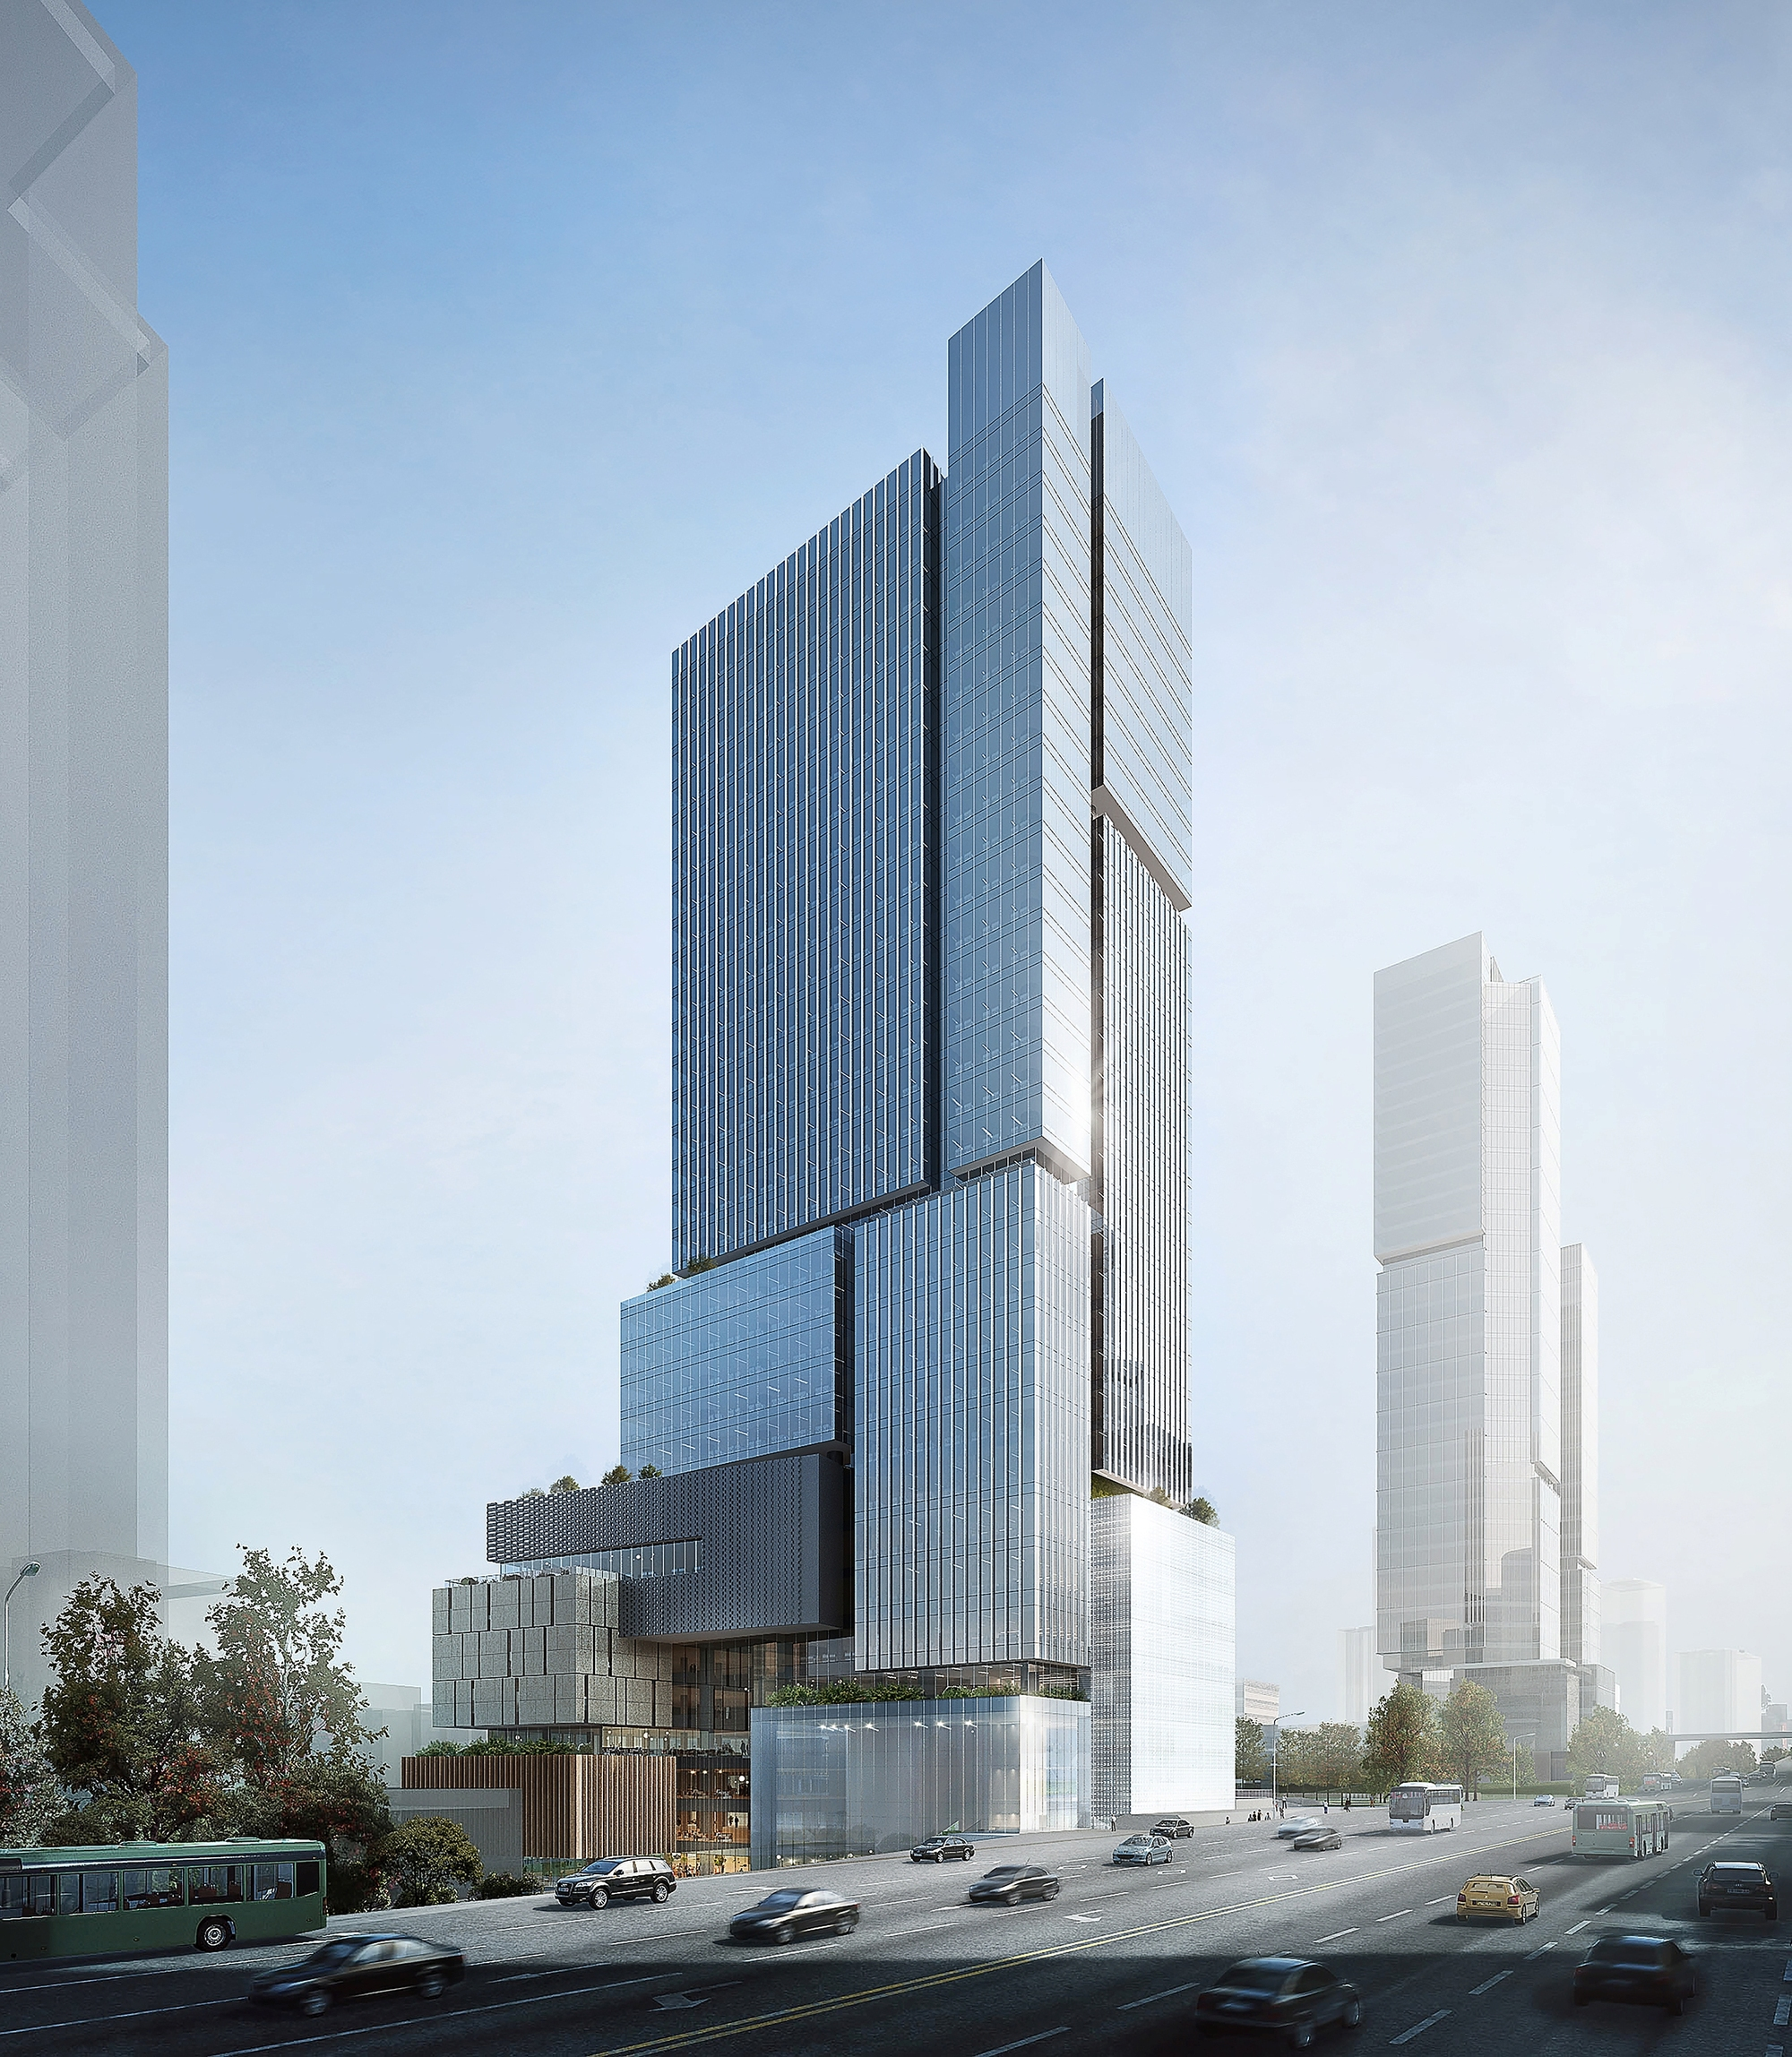 eid wins competition for stacked block mixed use development in chongqing archdaily. Black Bedroom Furniture Sets. Home Design Ideas